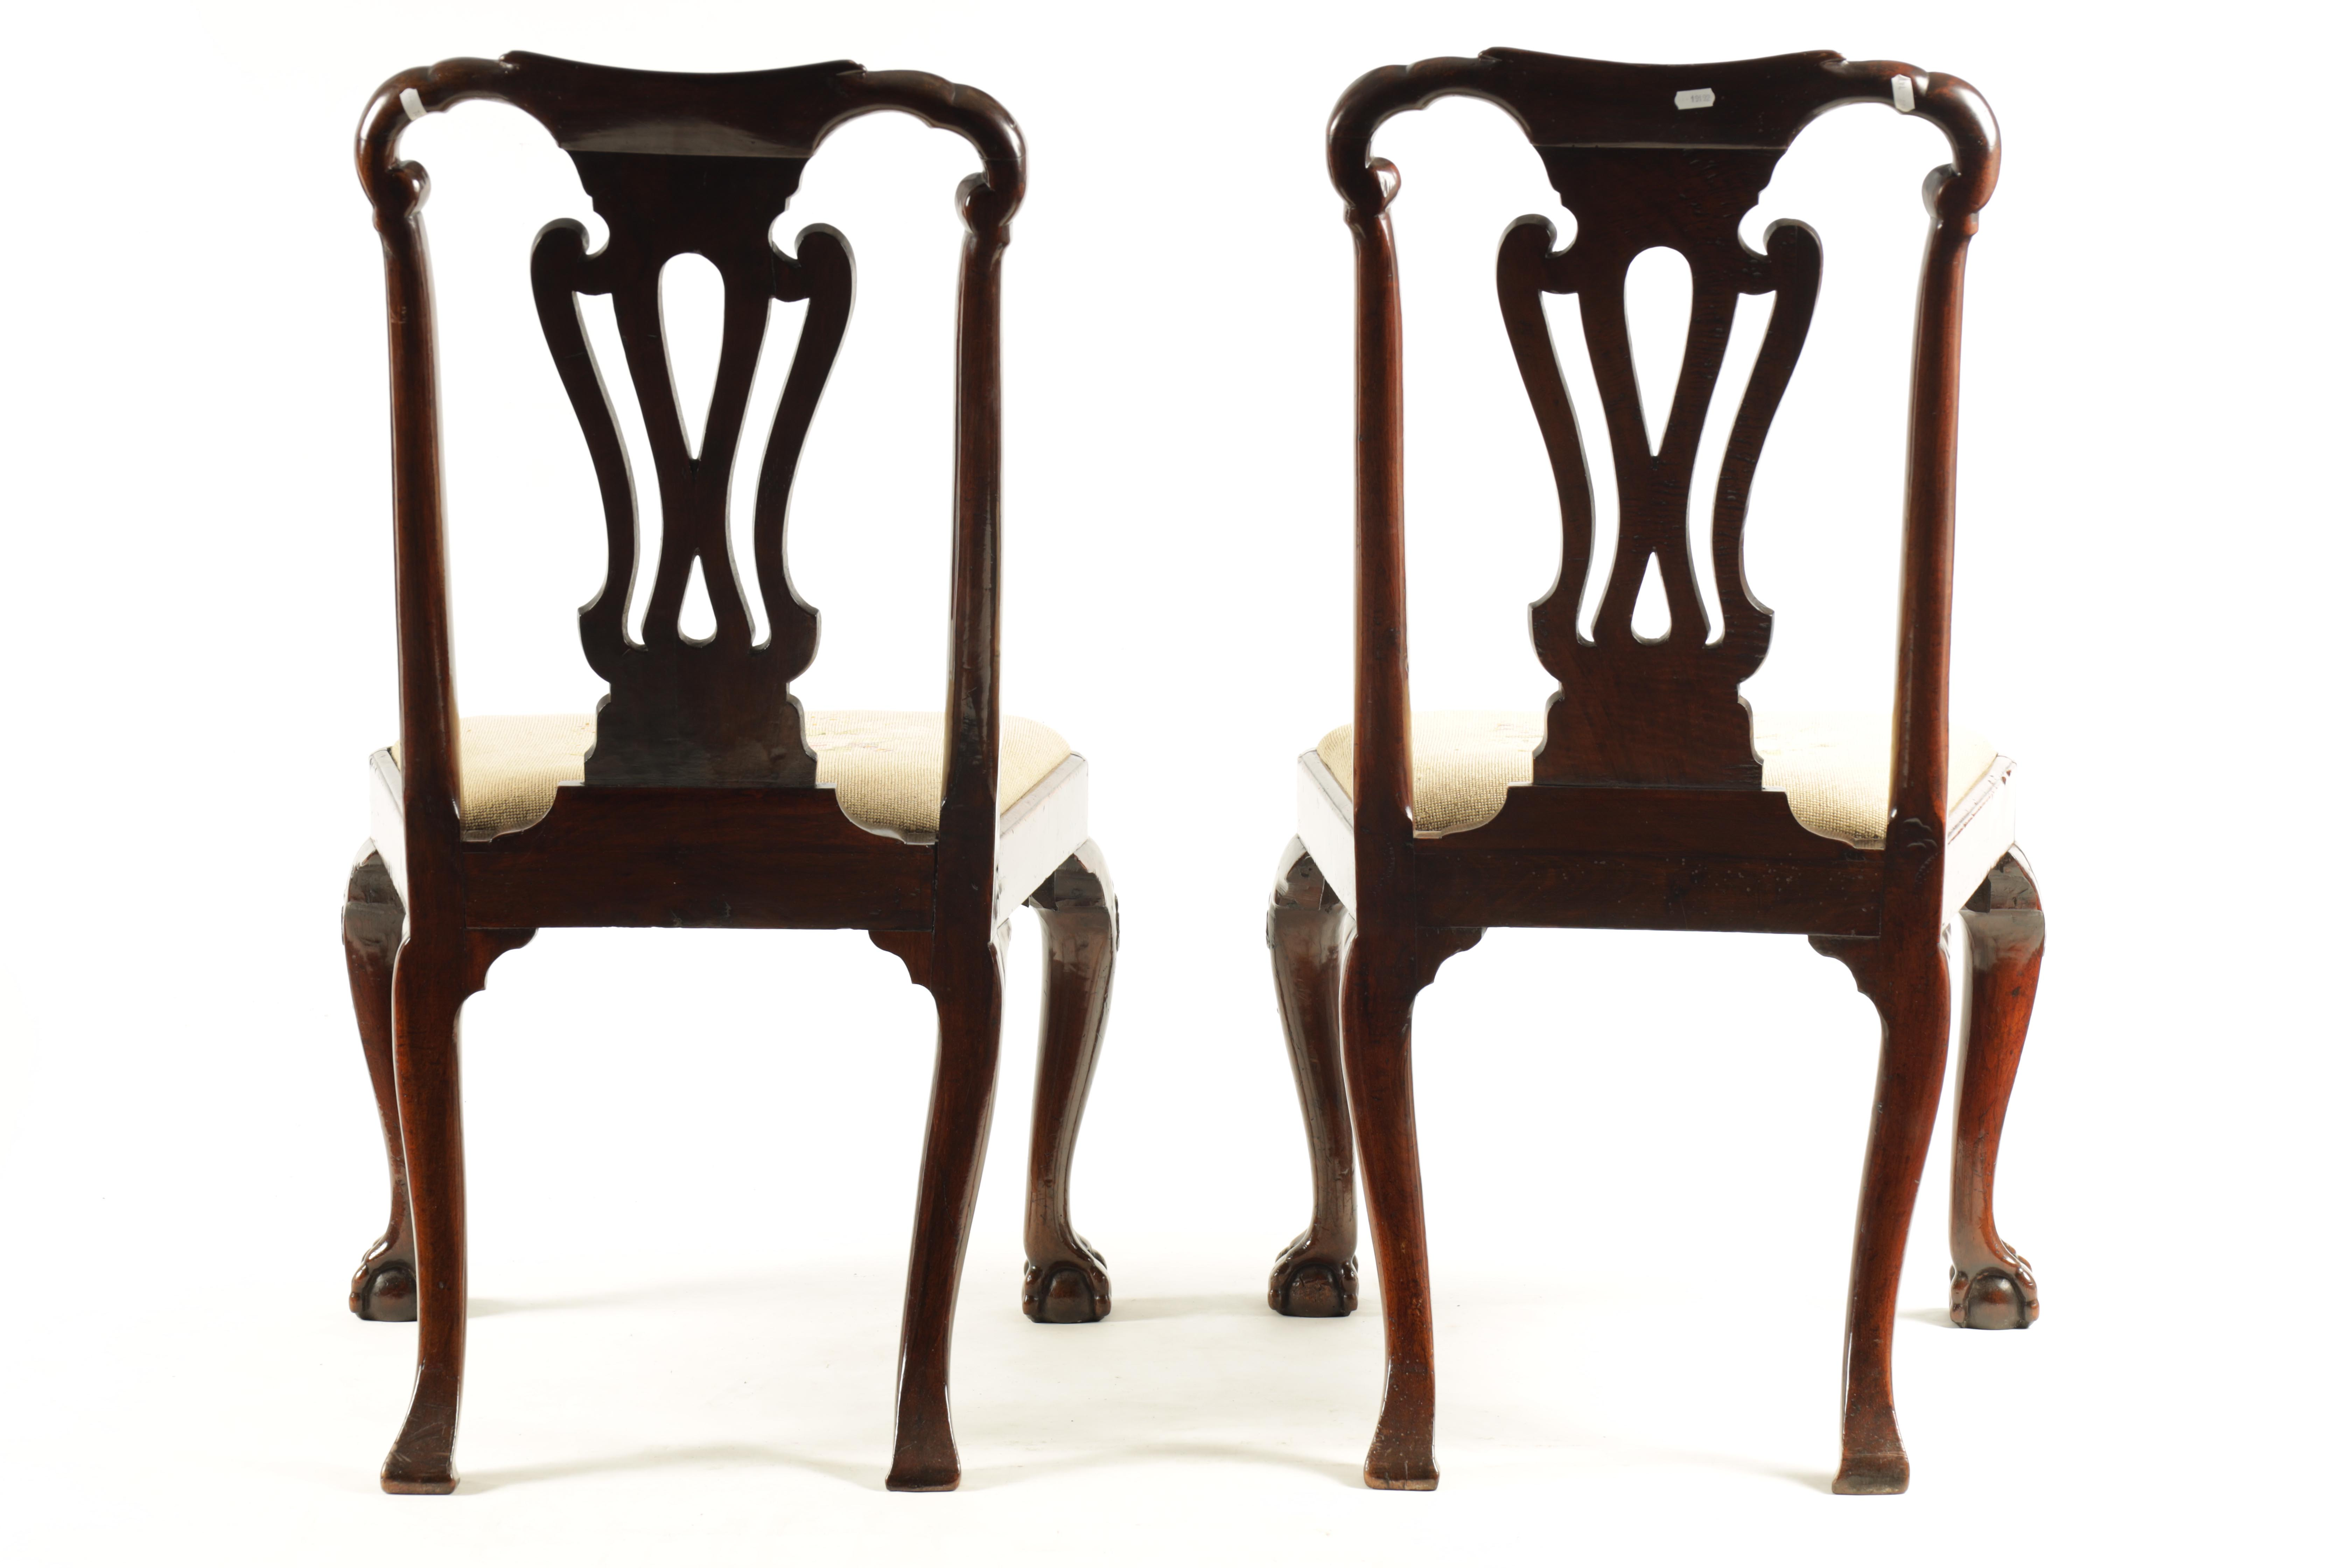 A PAIR OF GEORGE I WALNUT SIDE CHAIRS with leaf carved and scrolled top rails above vase-shaped - Image 9 of 12